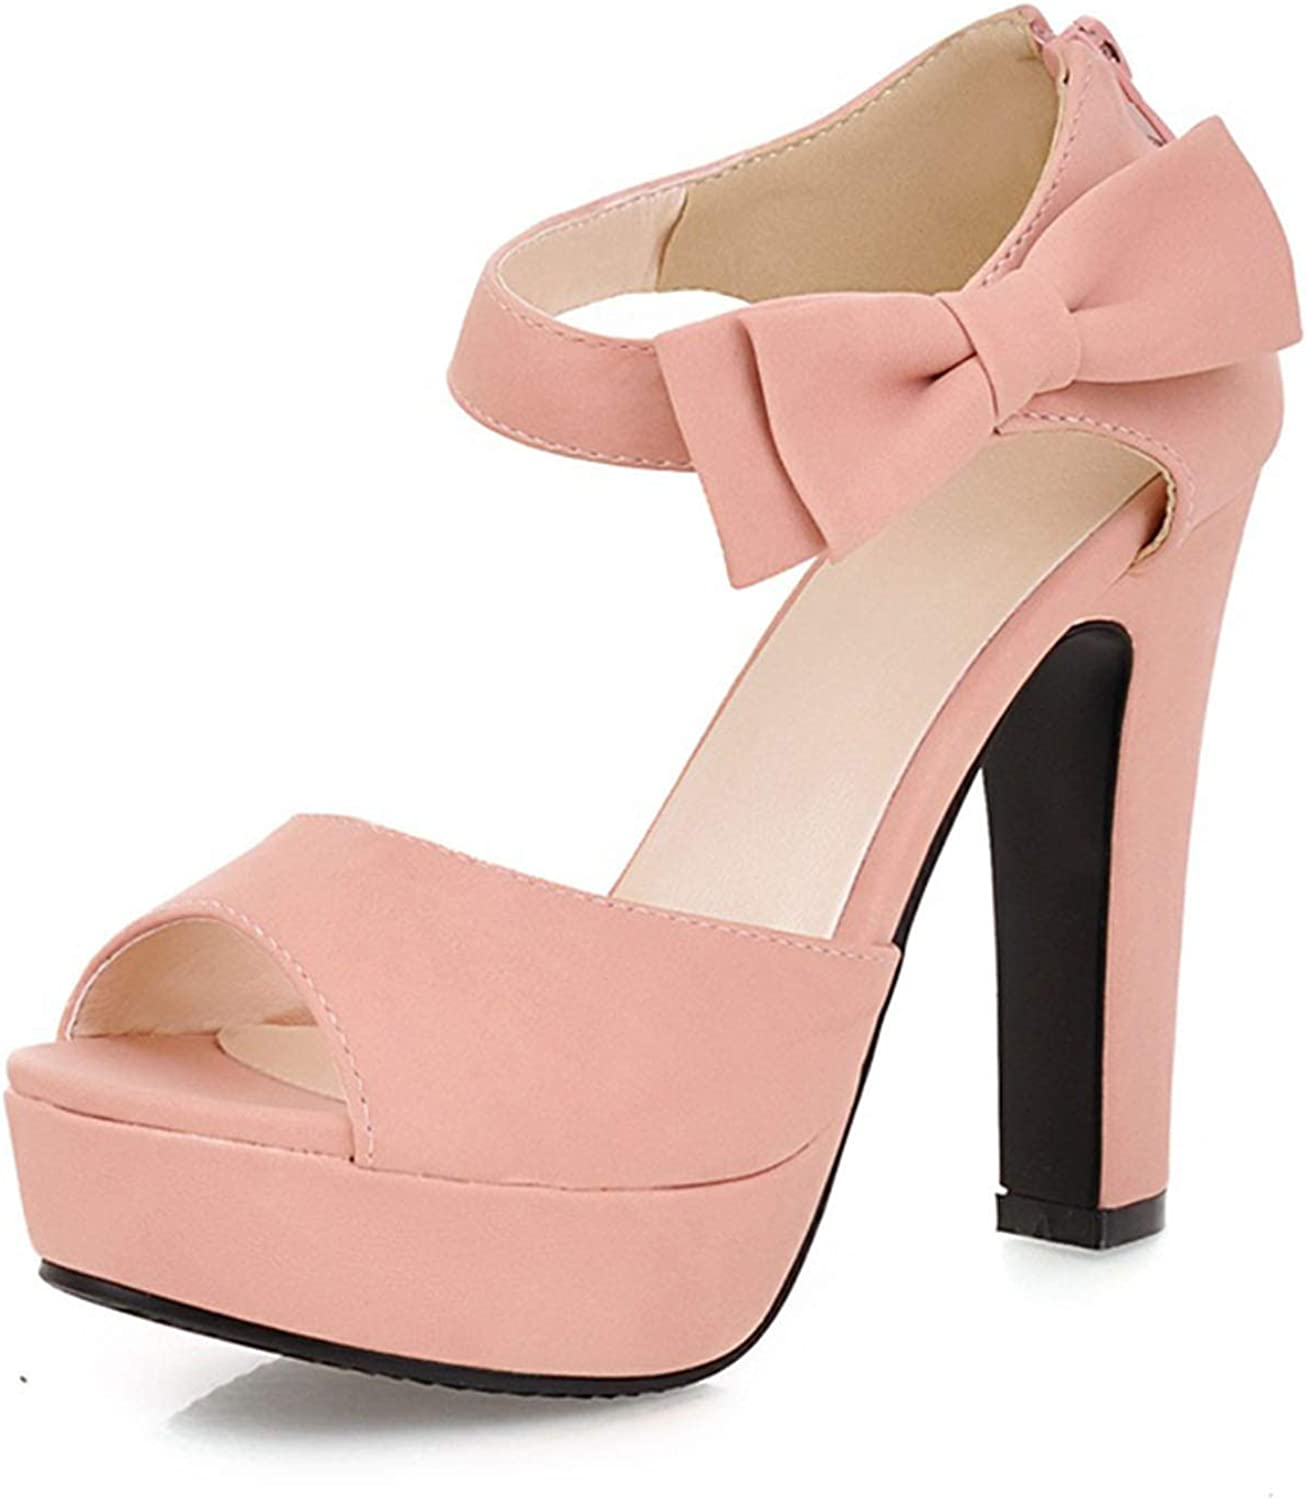 Fairly New Peep Toe Ankle Strap orange Sweet Thick High Heel Platform Lady shoes,Pink,3